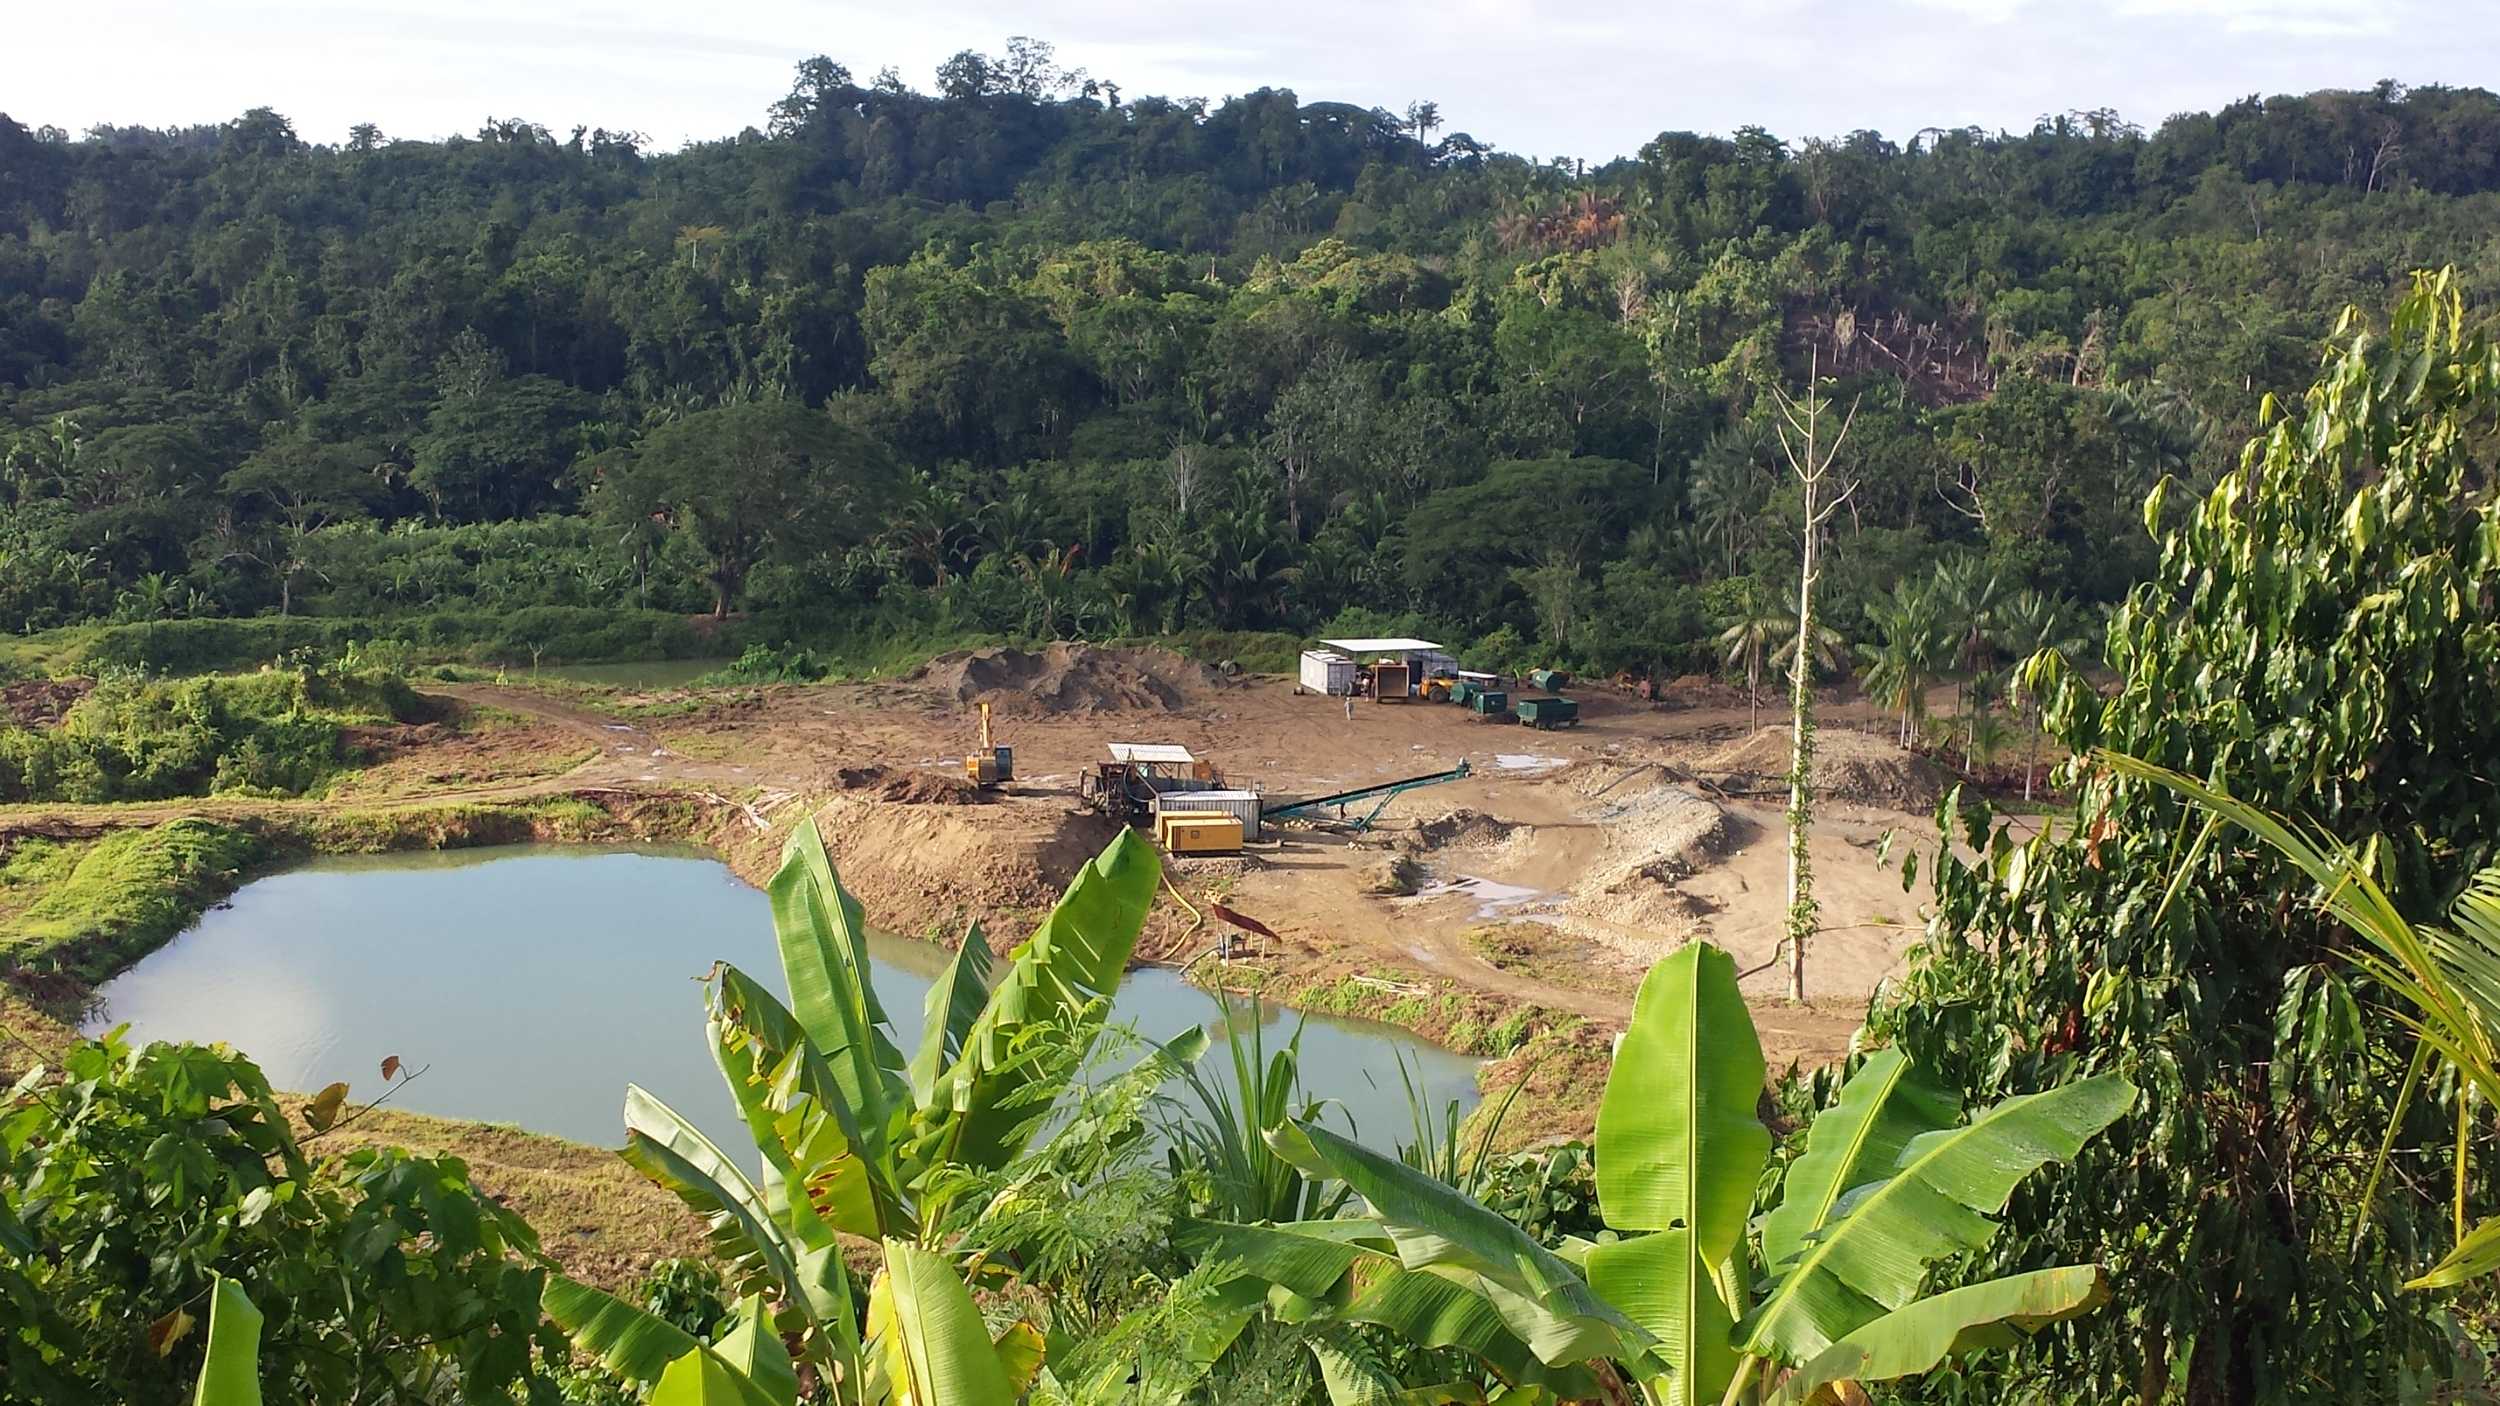 Previous Karbine Mining Alluvial Operation in Papua New Guinea